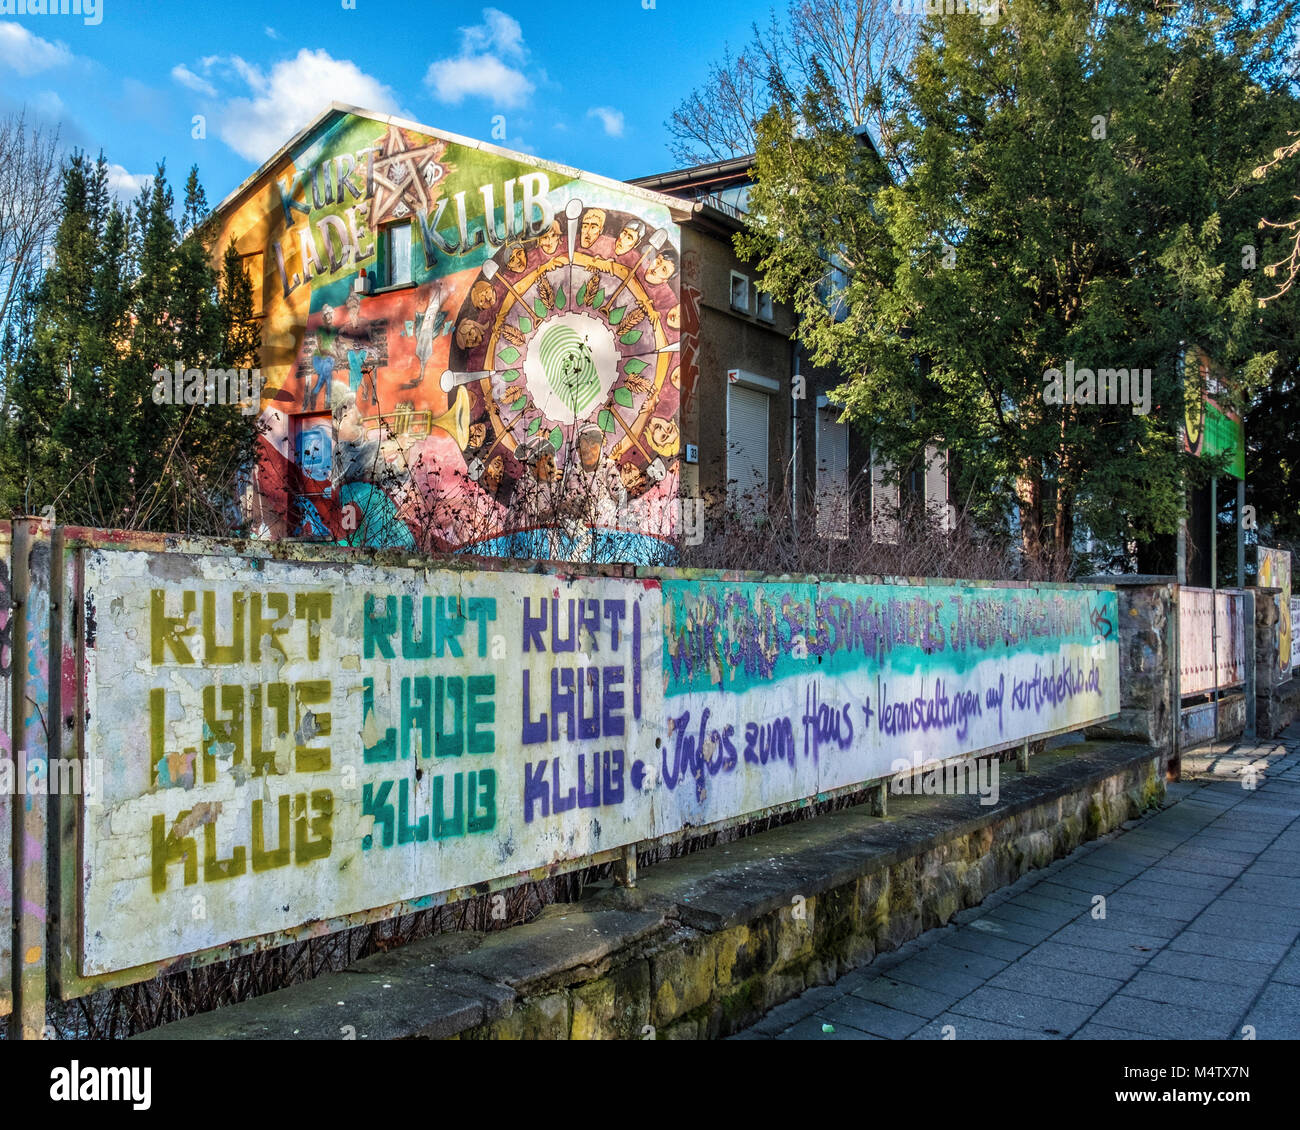 Berlin_Pankow. Kurt Lade Klub building exterior. Cult youth club offers cultural & music events & facilities - Stock Image